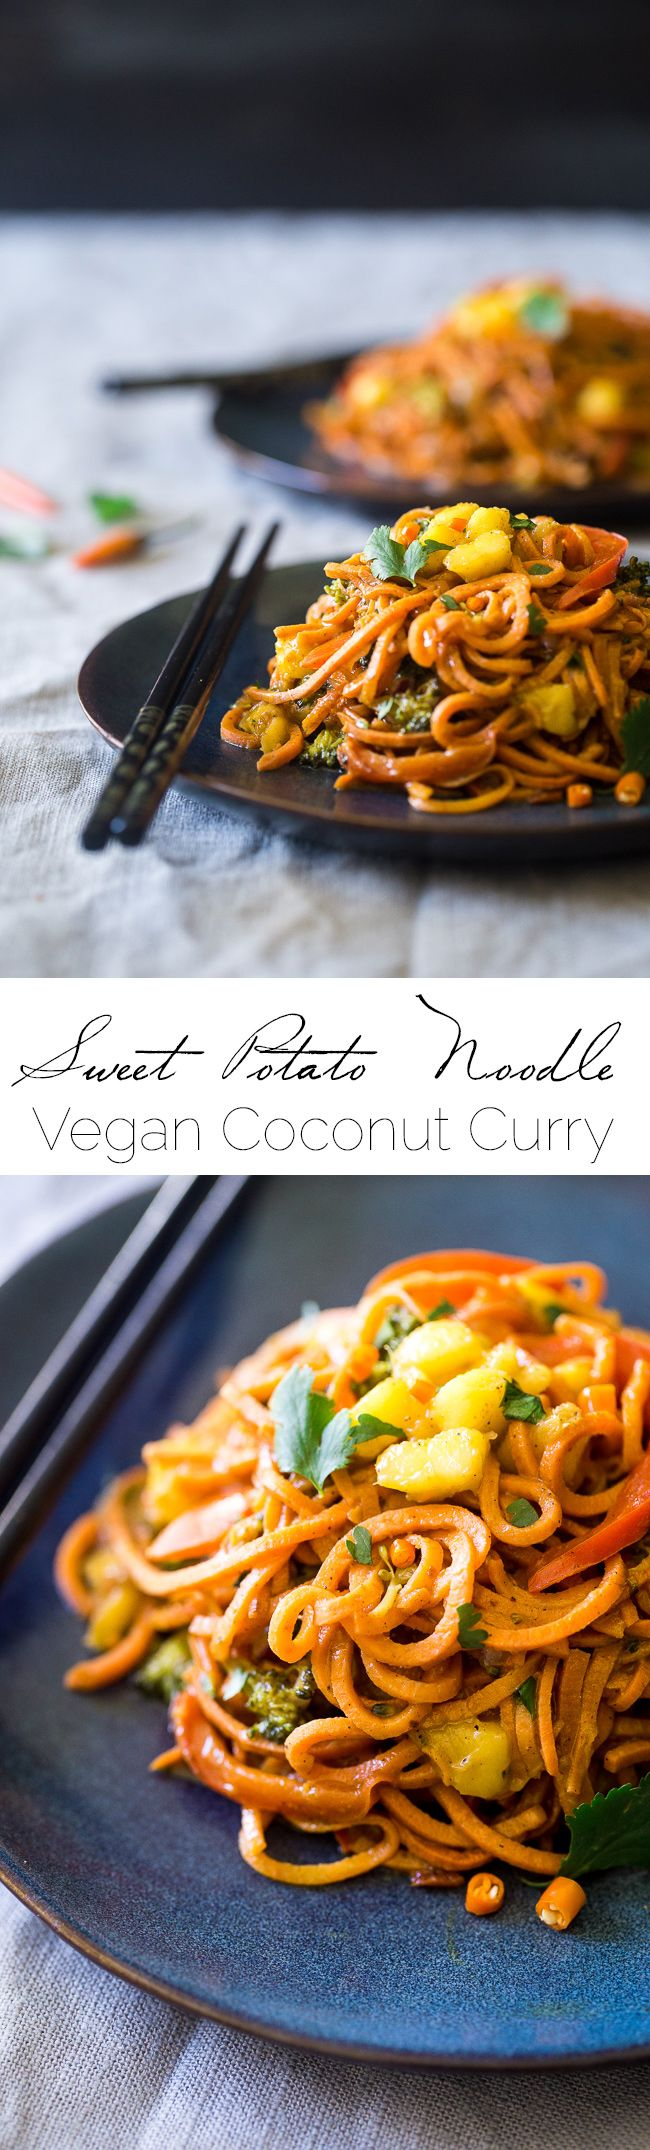 Vegan Coconut Curry with Spiralized Sweet Potato Noodles #glutenfree #recipe #coconut #curry